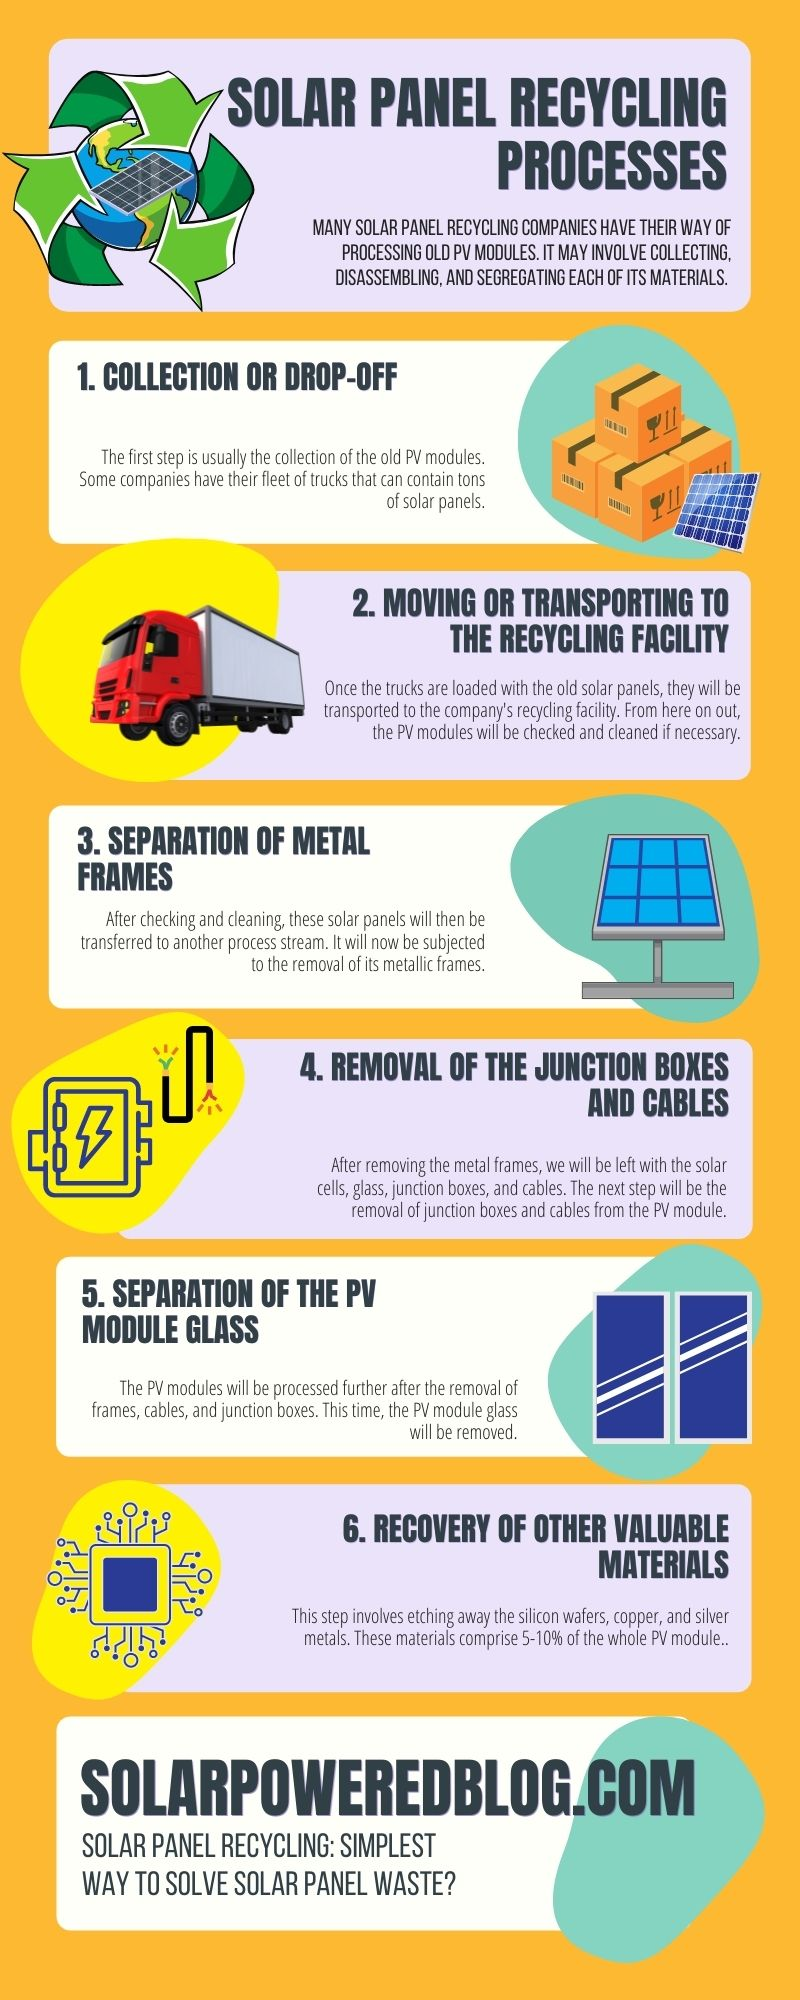 How Do Recycling Companies Process Solar Panels